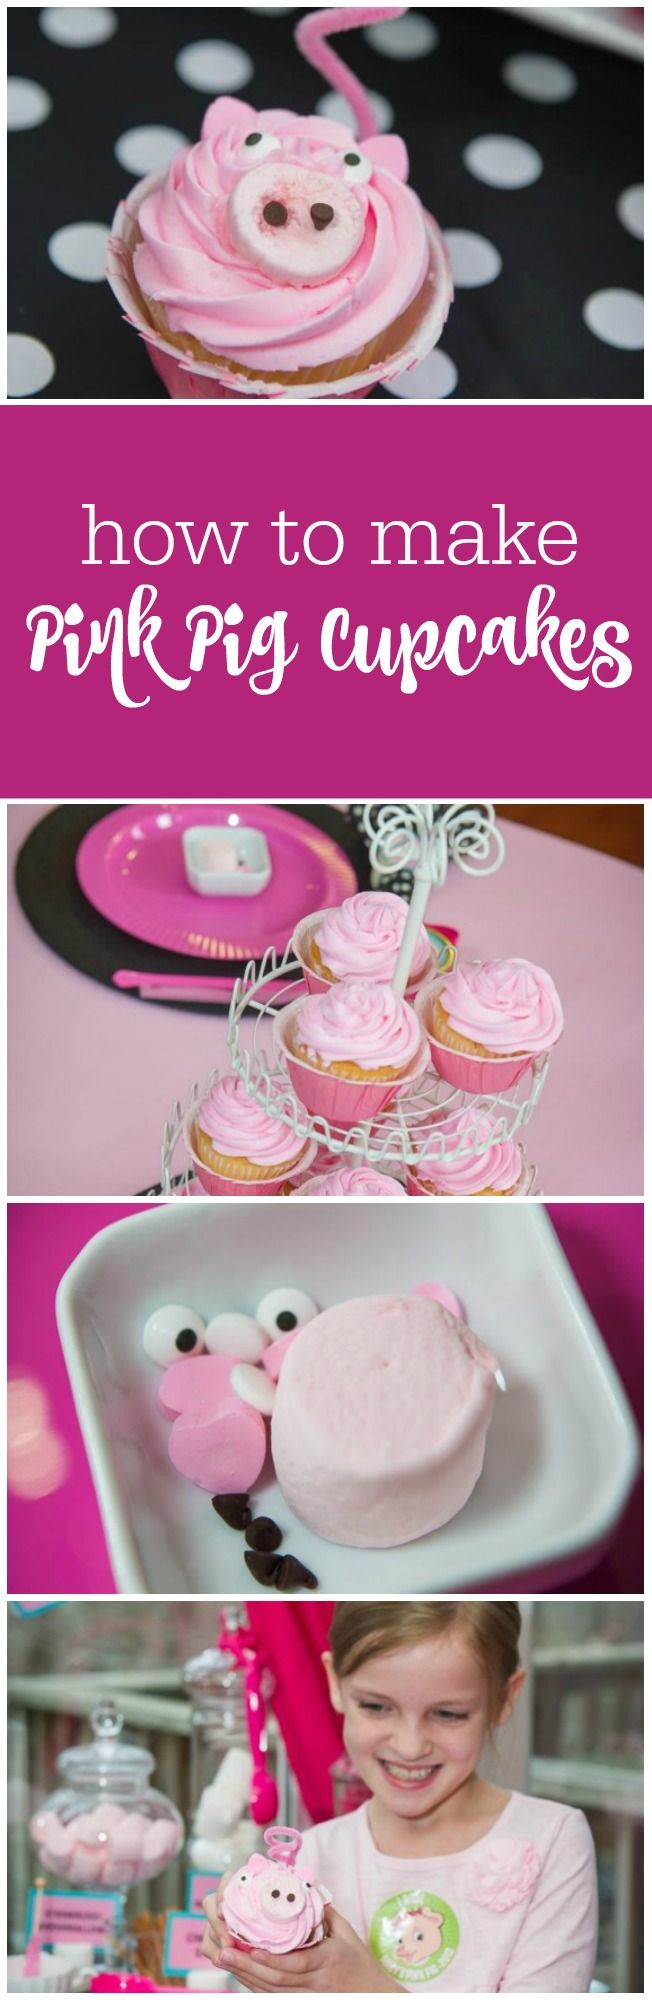 How to make pink pig cupcakes - perfect for a Pink Pig Party, Barnyard Party, Olivia Party, Peppa Pig Party by The Party Teacher | http://thepartyteacher.com/2014/01/09/tutorial-pink-pig-cupcakes/